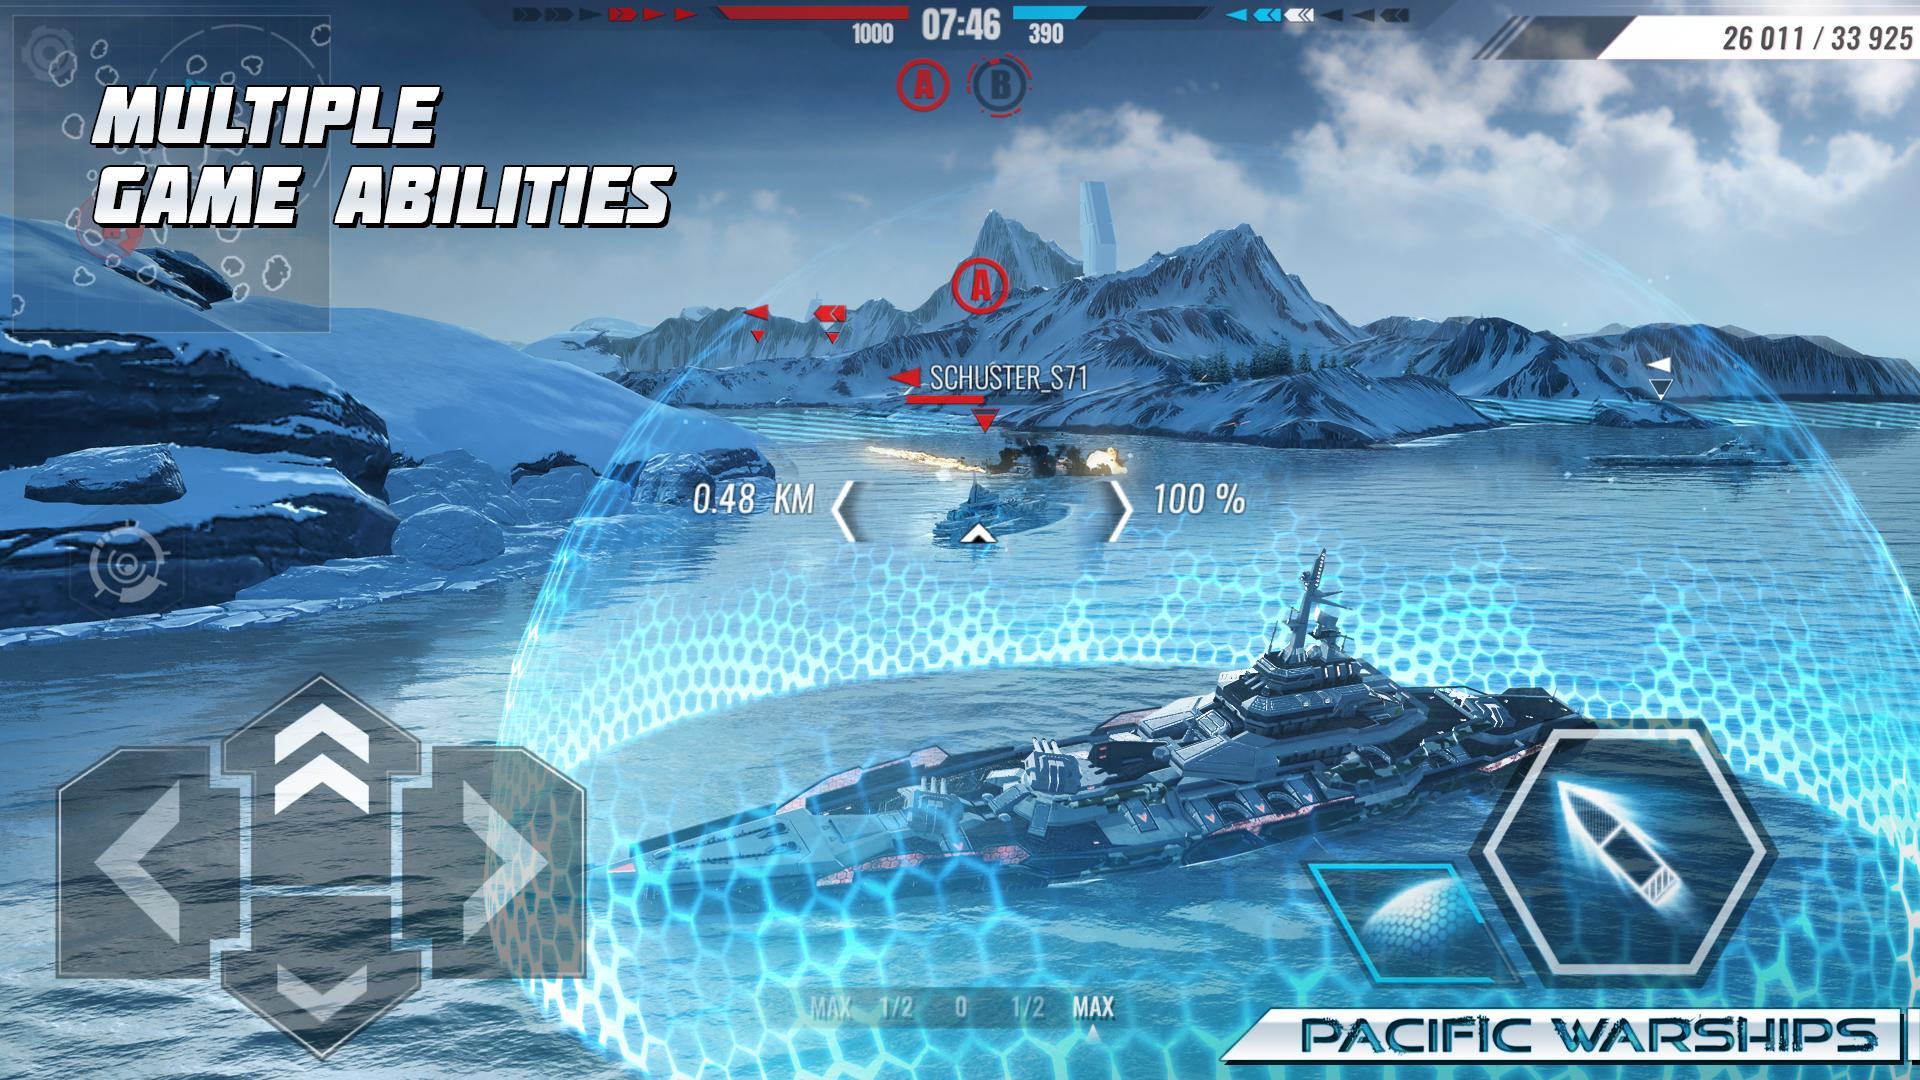 Pacific Warships for Android - APK Download